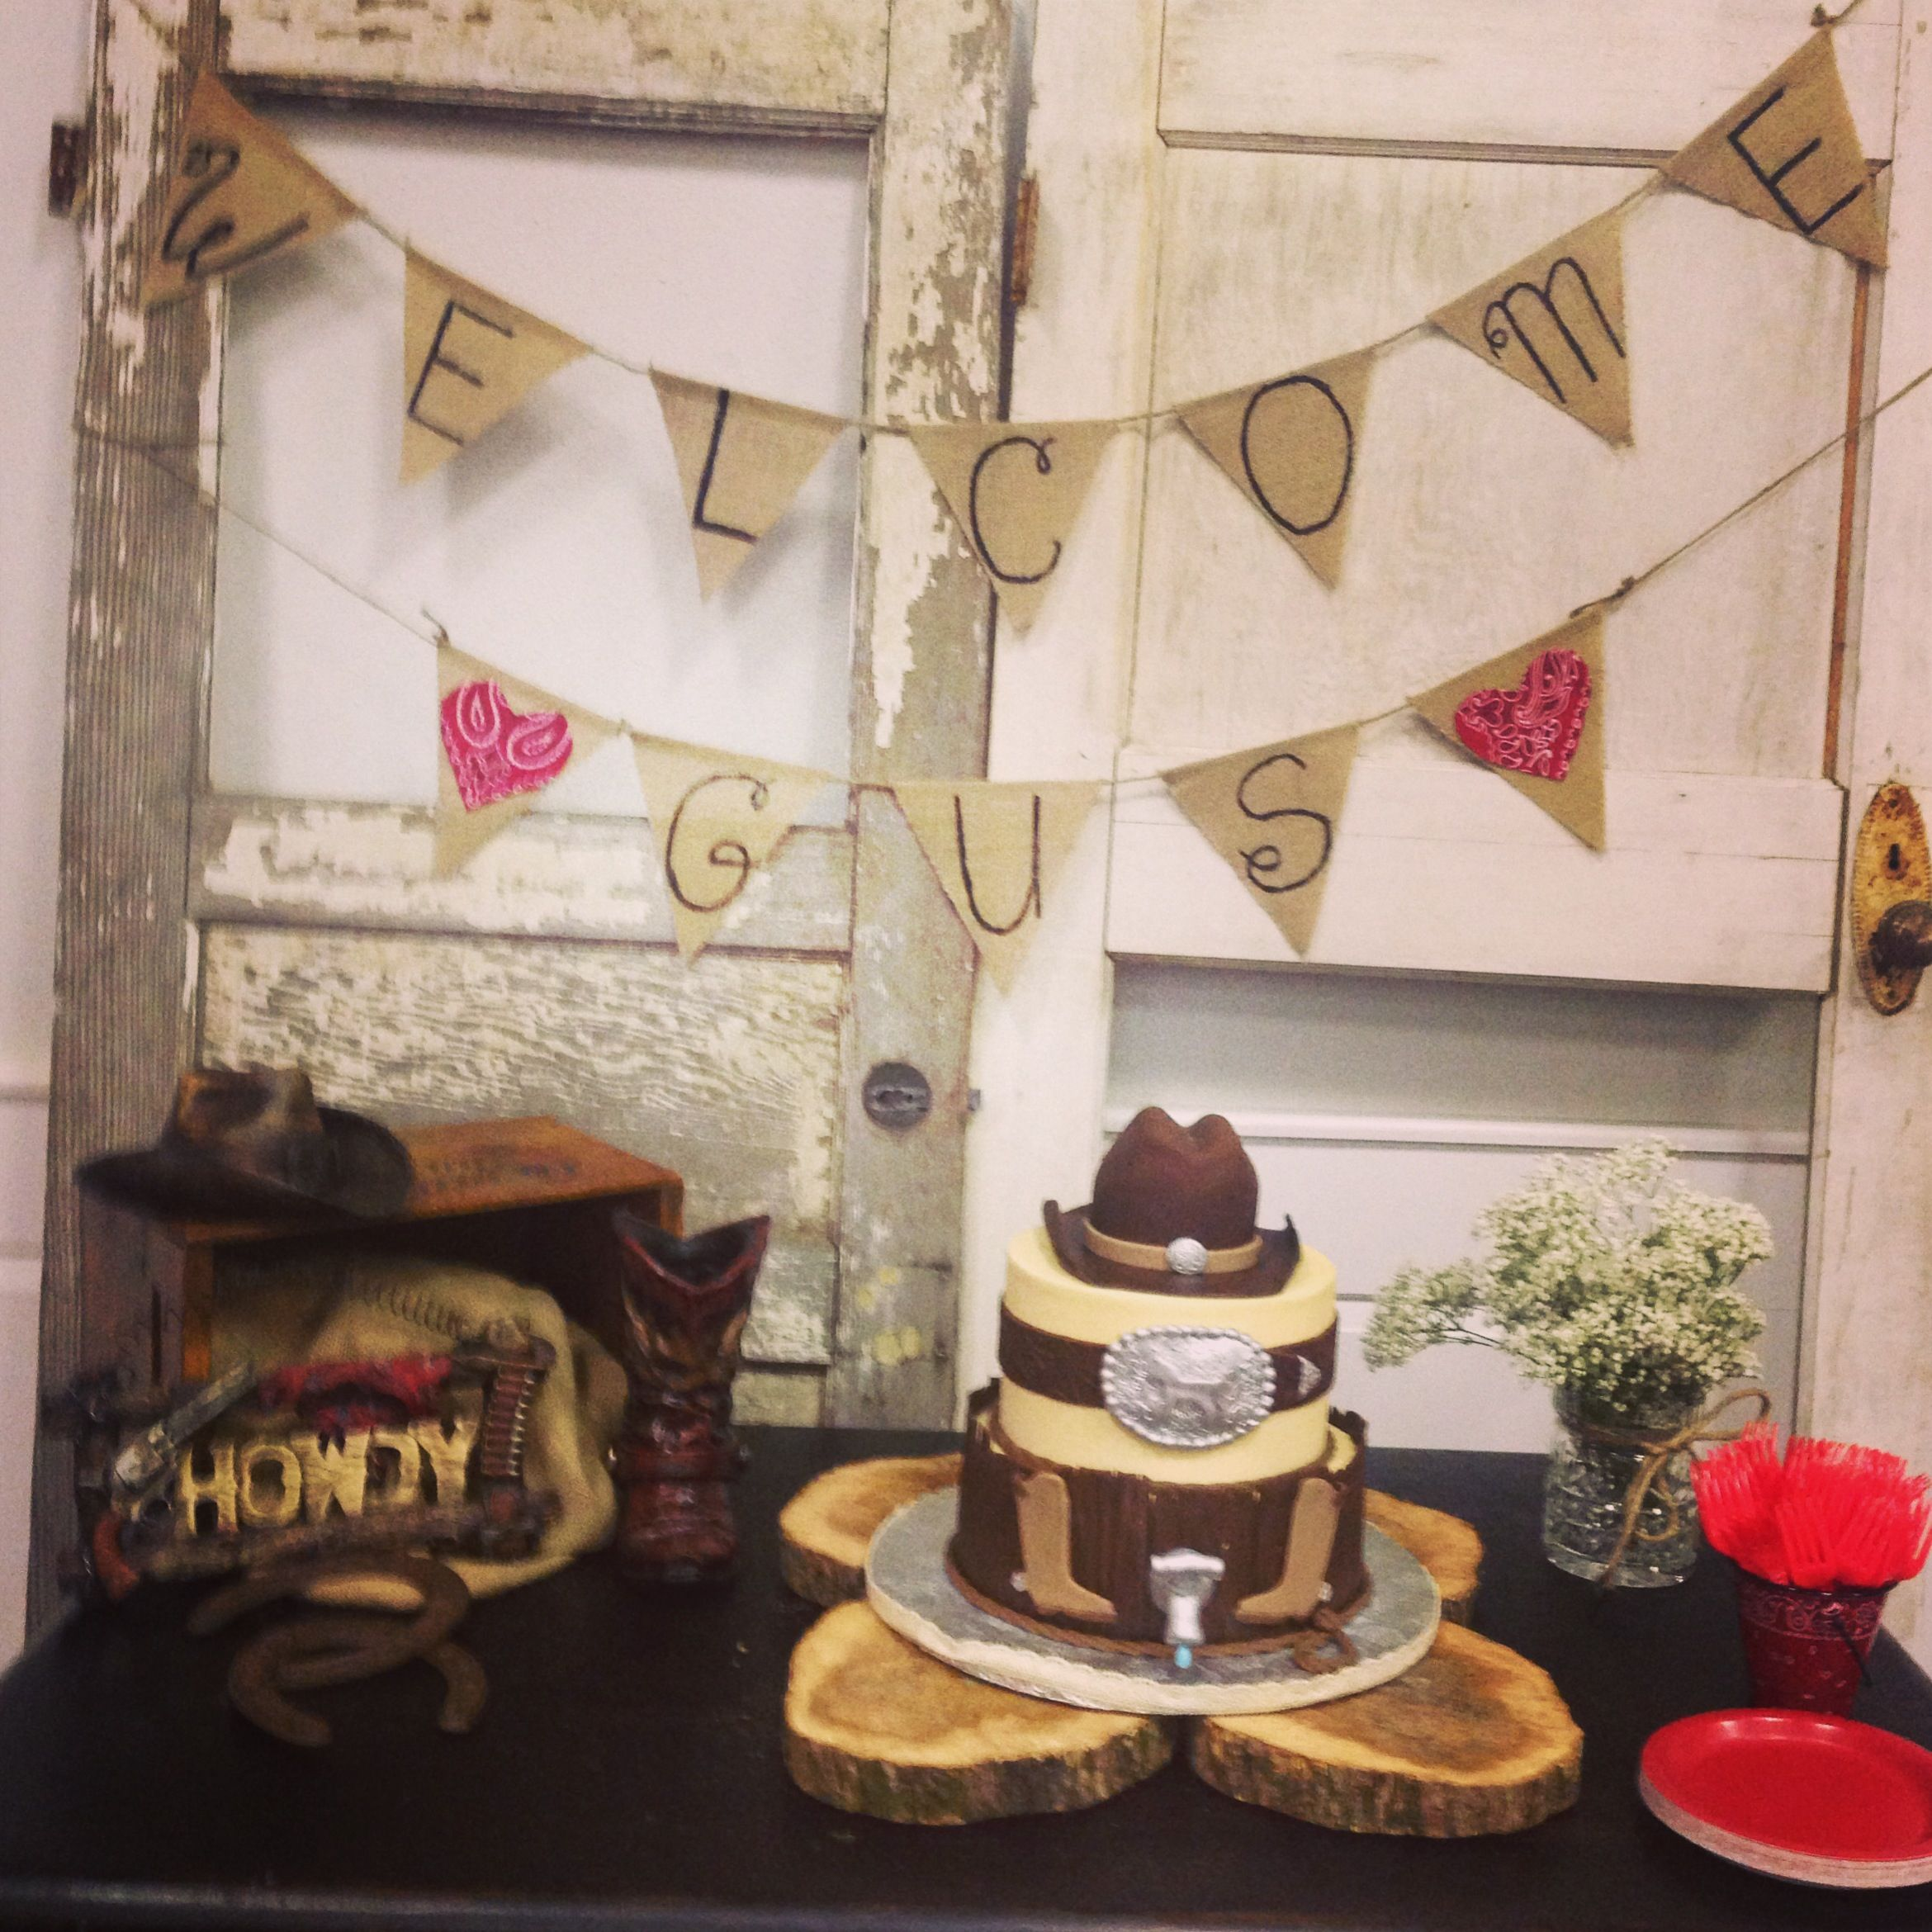 Baby Shower Cowboy Theme: Western Themed Baby Shower!